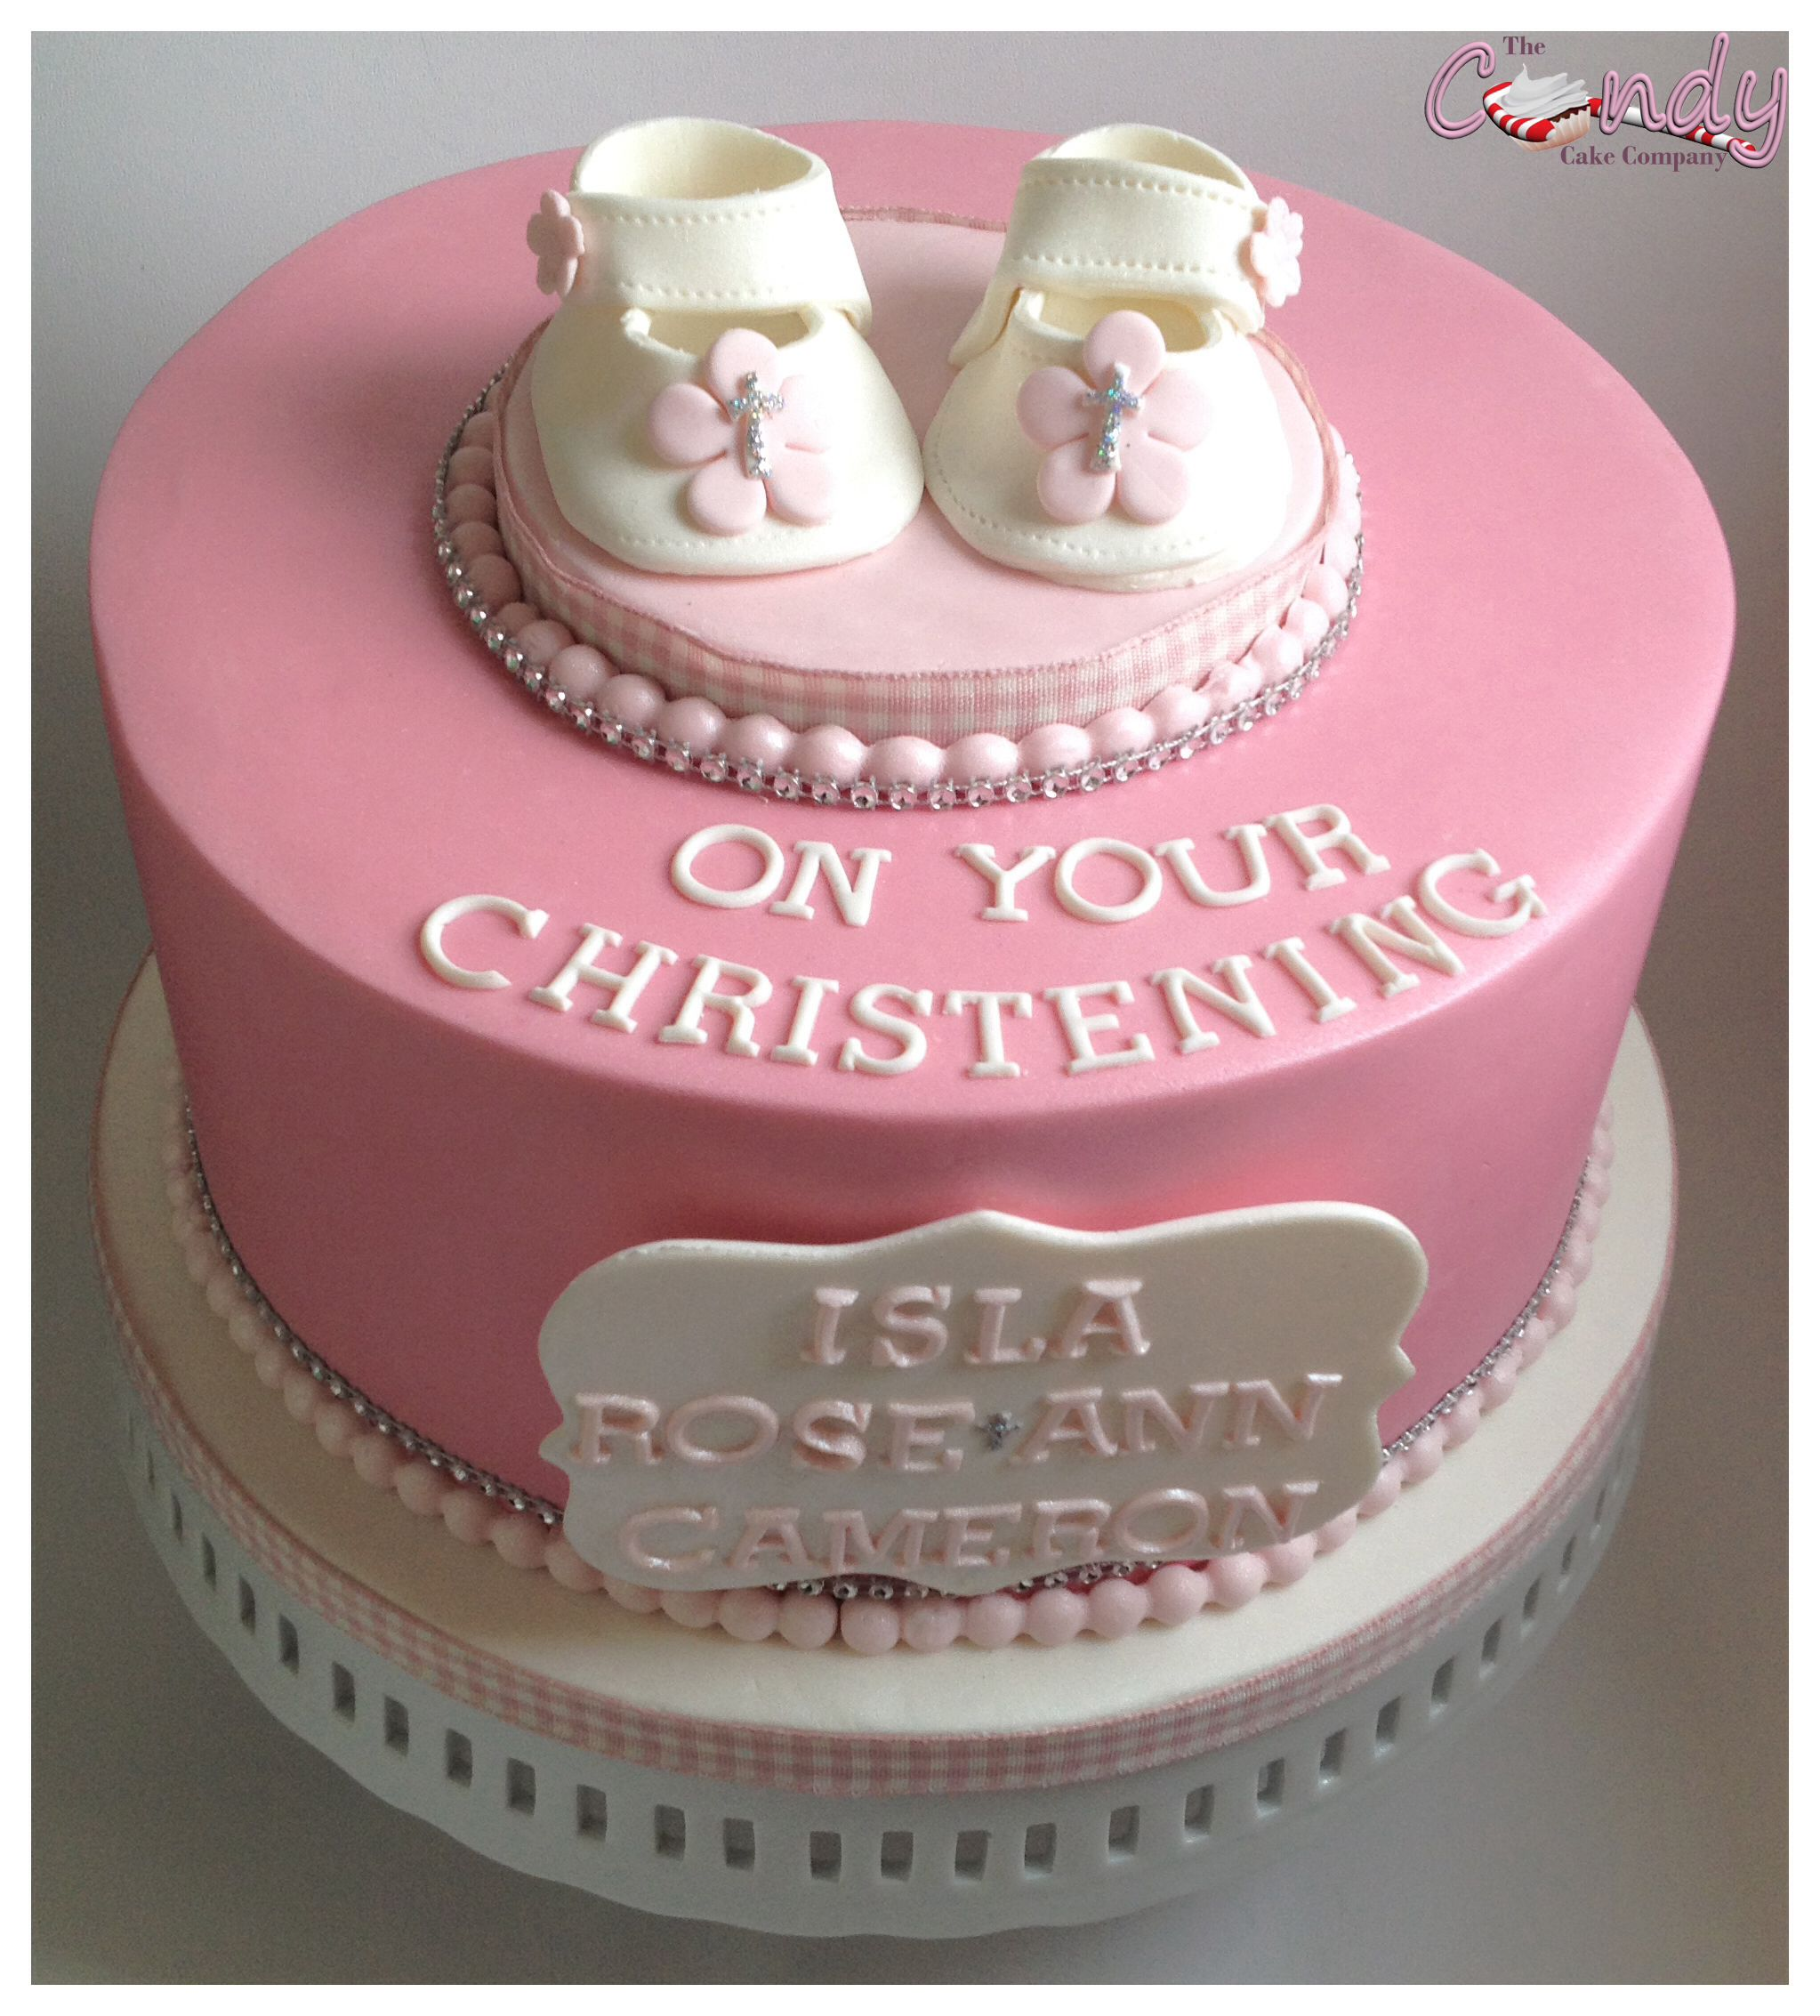 Baby girls Christening cake The Candy Cake Company Dartford Kent